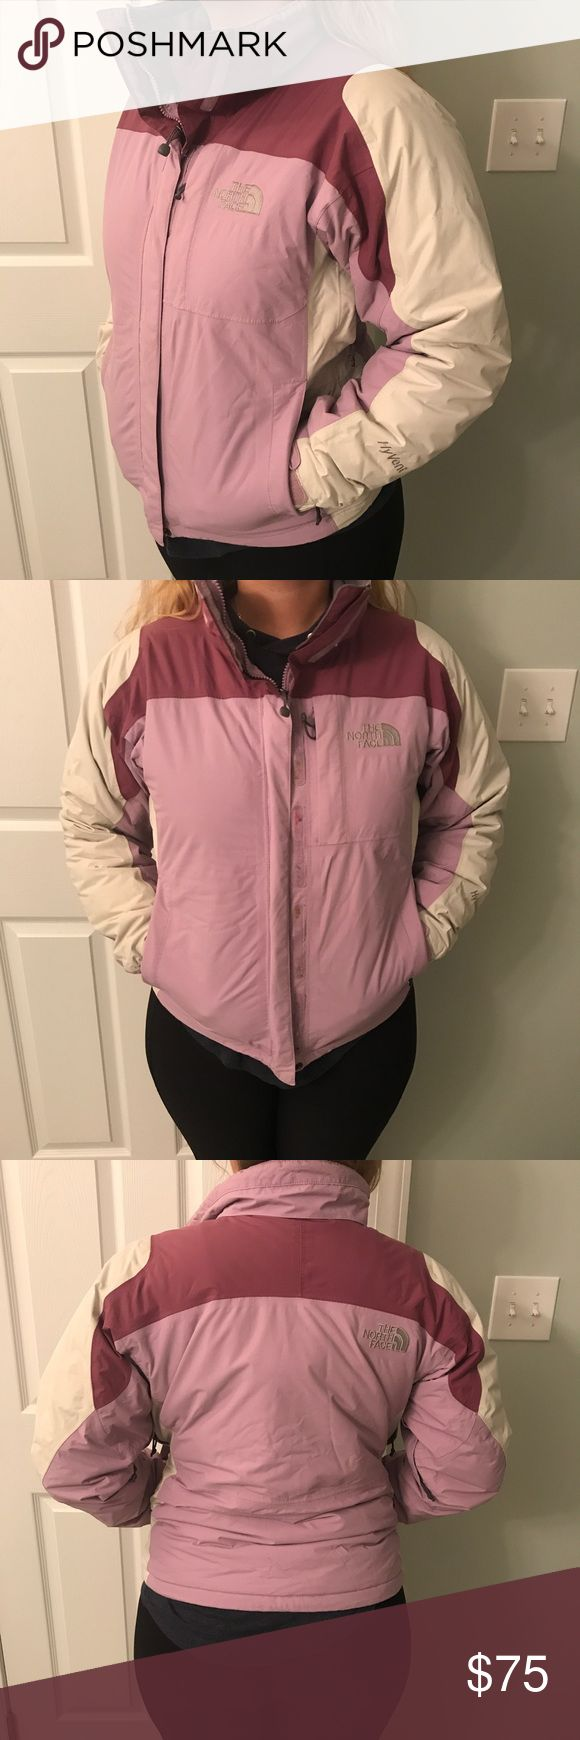 North Face Winter Jacket Women's North Face jacket in great condition! Size small. Very warm. Light purple in color with off-white and darker purple colors as well. Insulated with zippers in the armpits. The North Face Jackets & Coats